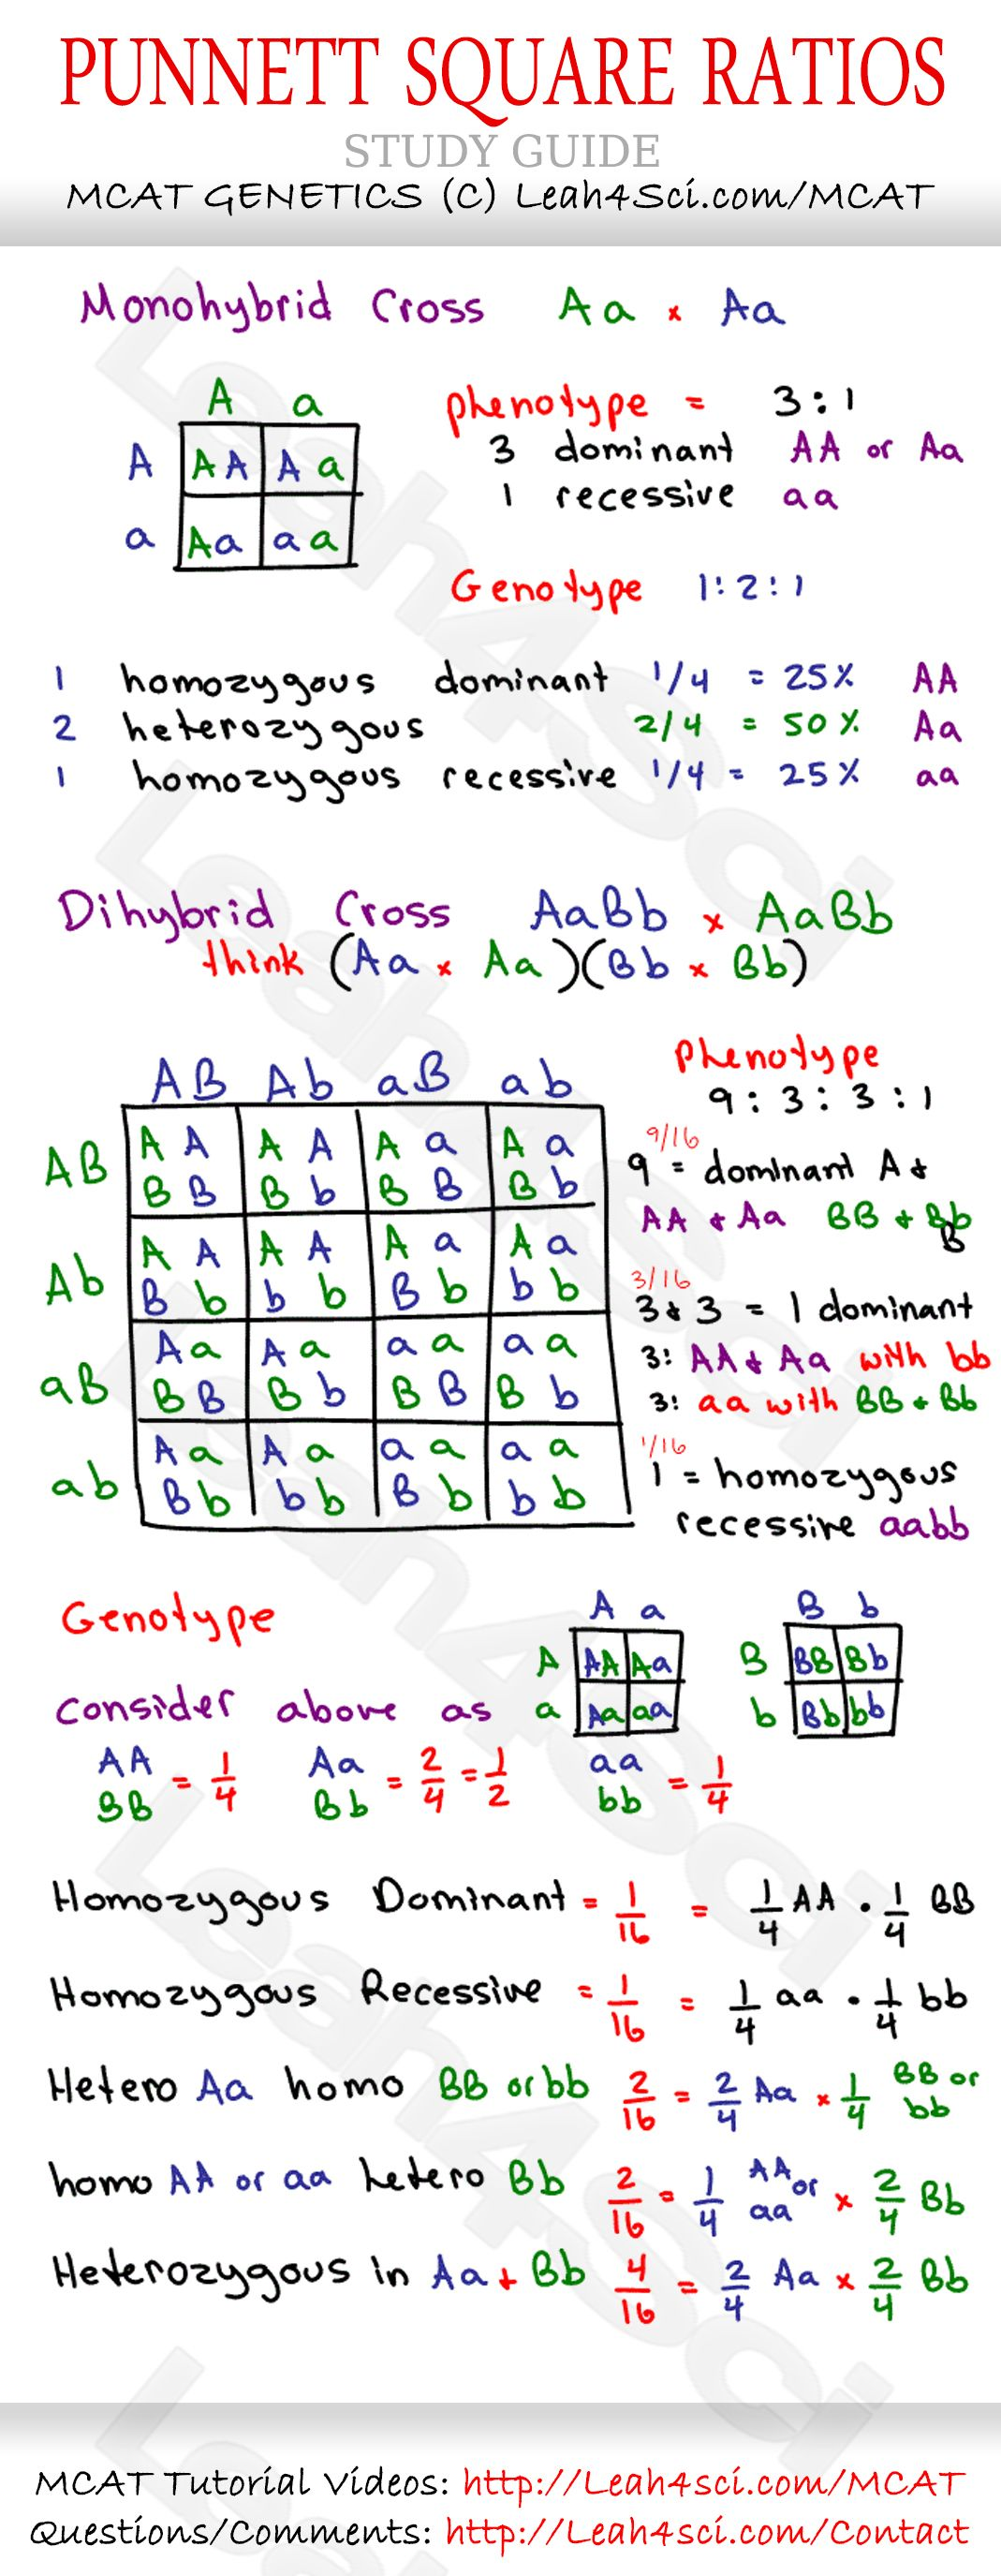 Punnet Square Ratios Mcat Genetics Cheat Sheet Study Guide